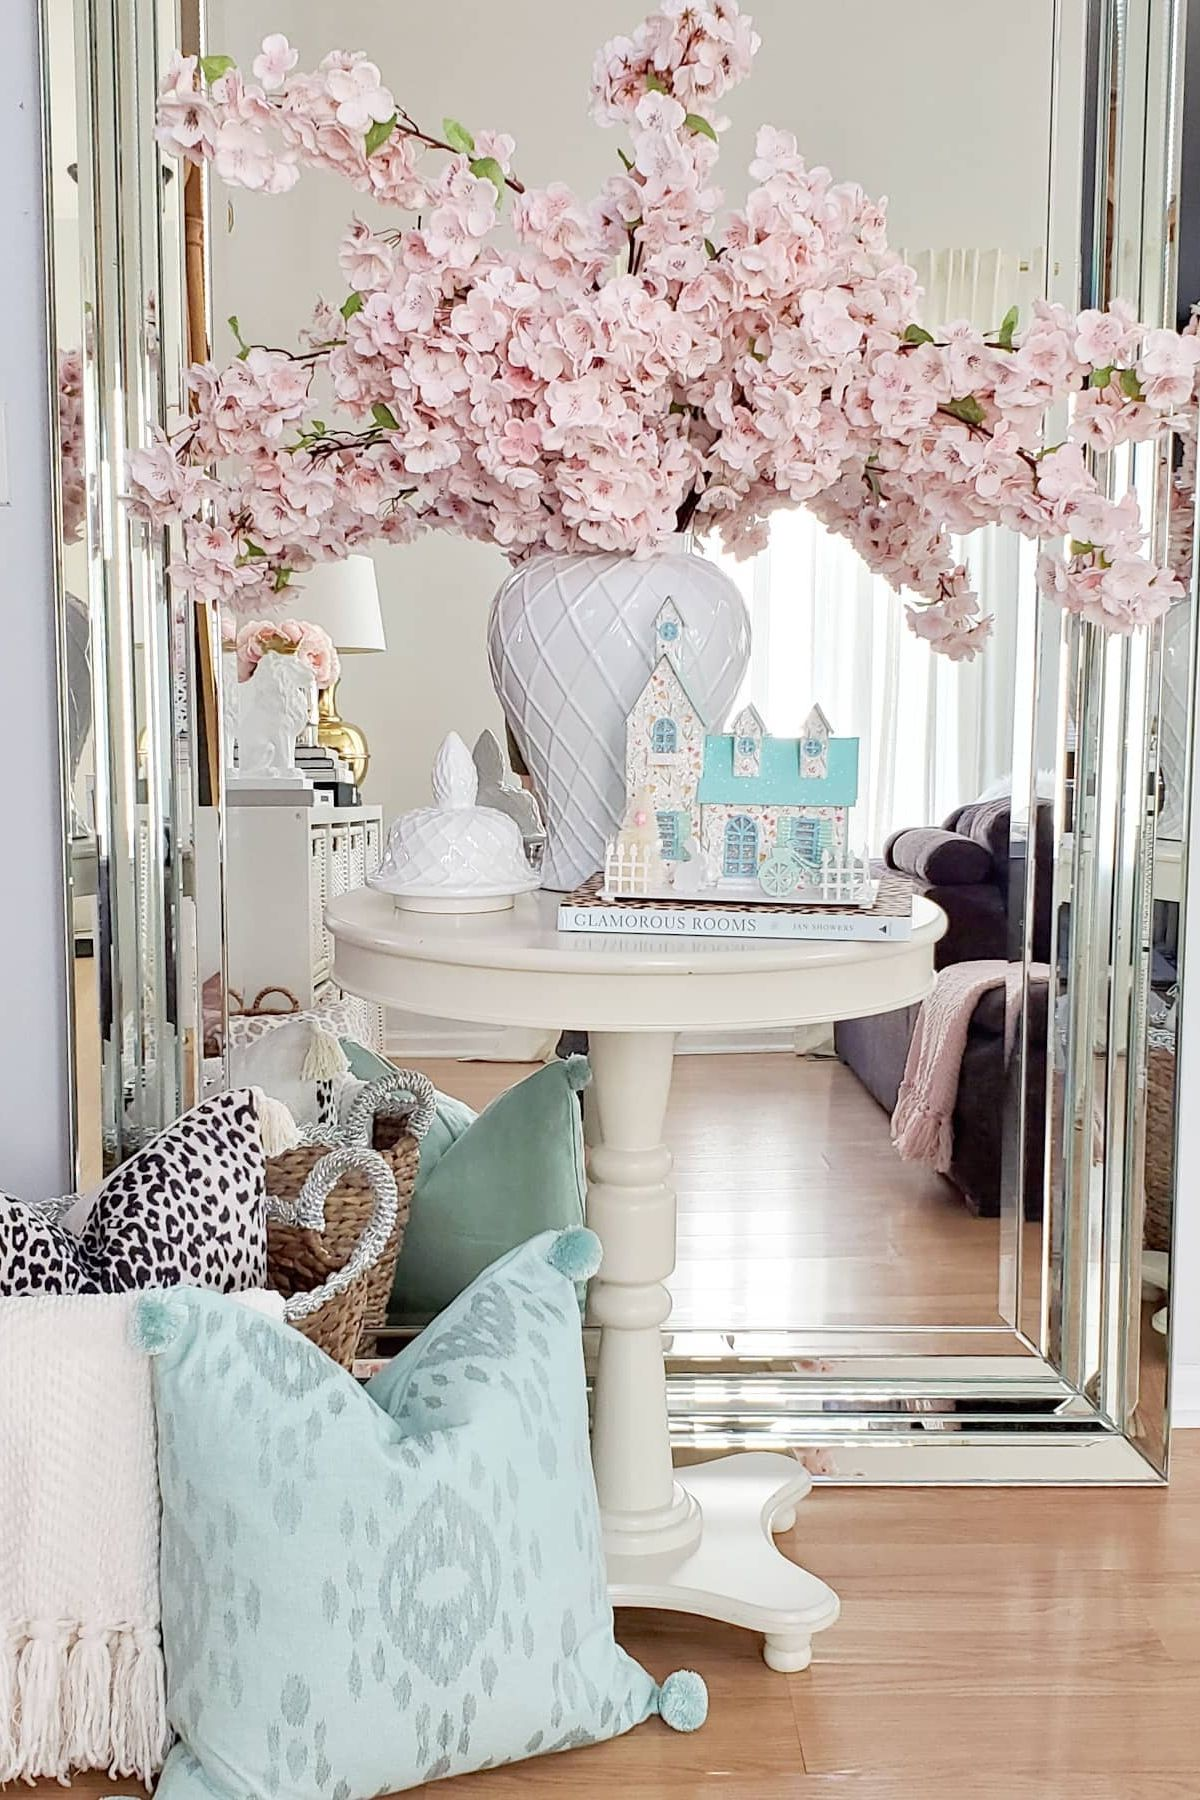 Spring Pink Cherry Blossom Decor Styling Ideas Decor Home Decor Spring Home Decor